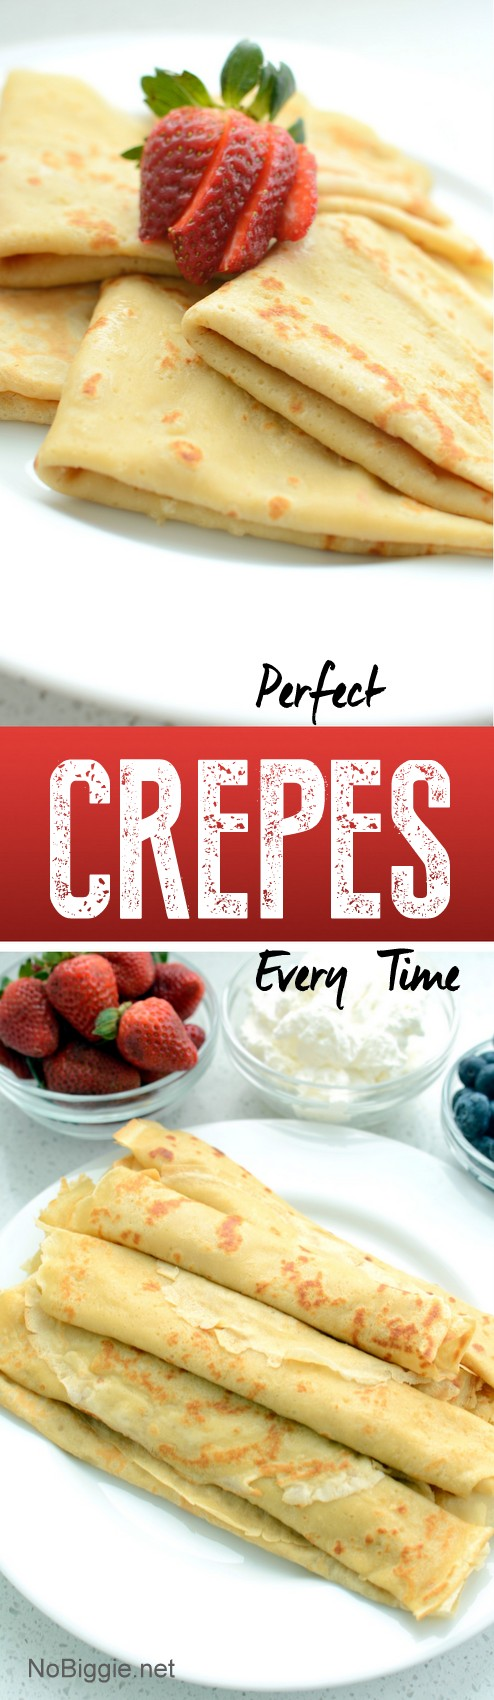 http://www.nobiggie.net/wp-content/uploads/2017/01/perfect-crepes-every-time.jpg